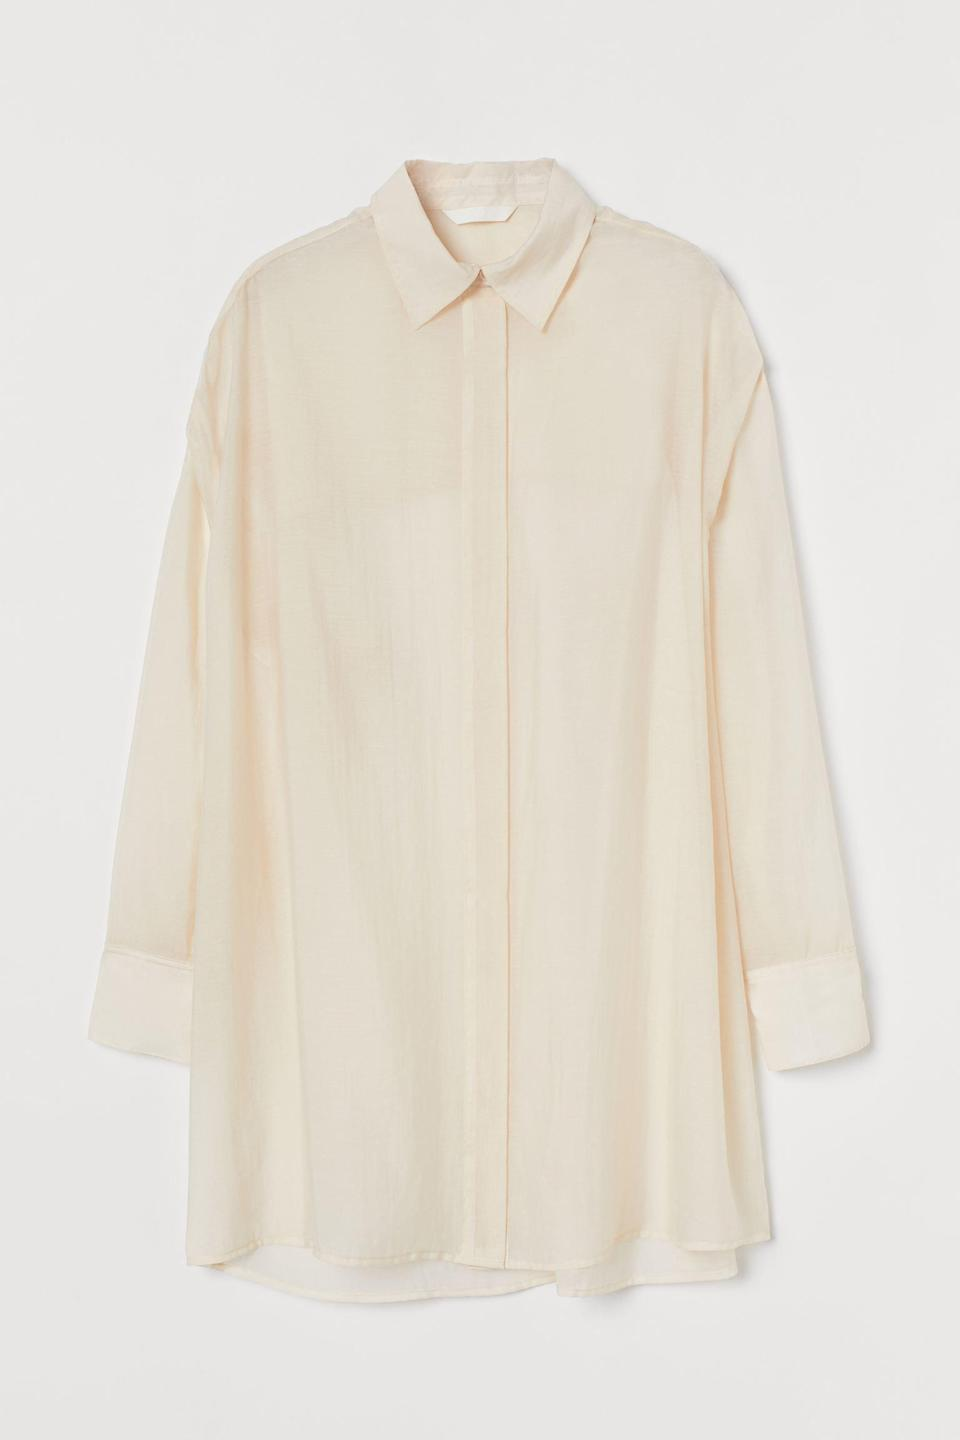 """<strong>— PAID —</strong><br><br>Our perfect spring """"home clothes"""" outfit recipe is this floaty button-down over any of the lingerie sets seen here.<br><br><strong>H&M</strong> Airy Lyocell-Blend Shirt, $, available at <a href=""""https://go.skimresources.com/?id=30283X879131&url=https%3A%2F%2Fwww2.hm.com%2Fen_us%2Fproductpage.0978872001.html"""" rel=""""nofollow noopener"""" target=""""_blank"""" data-ylk=""""slk:H&M"""" class=""""link rapid-noclick-resp"""">H&M</a>"""